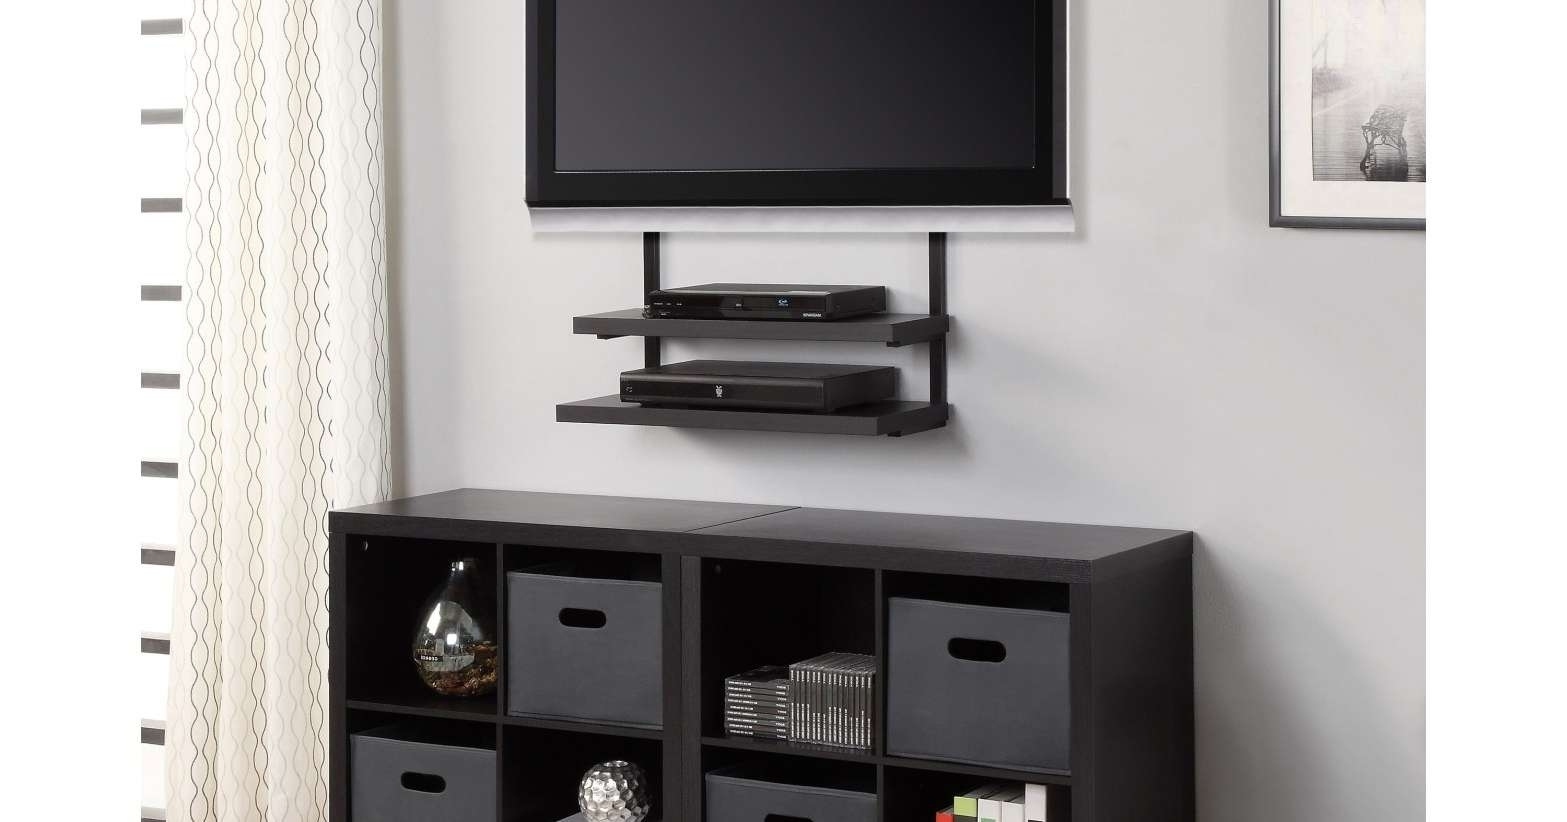 Tv : 70 Inch Tv Stand Awesome 44 Swivel Black Glass Tv Stands Pertaining To Swivel Black Glass Tv Stands (View 8 of 15)